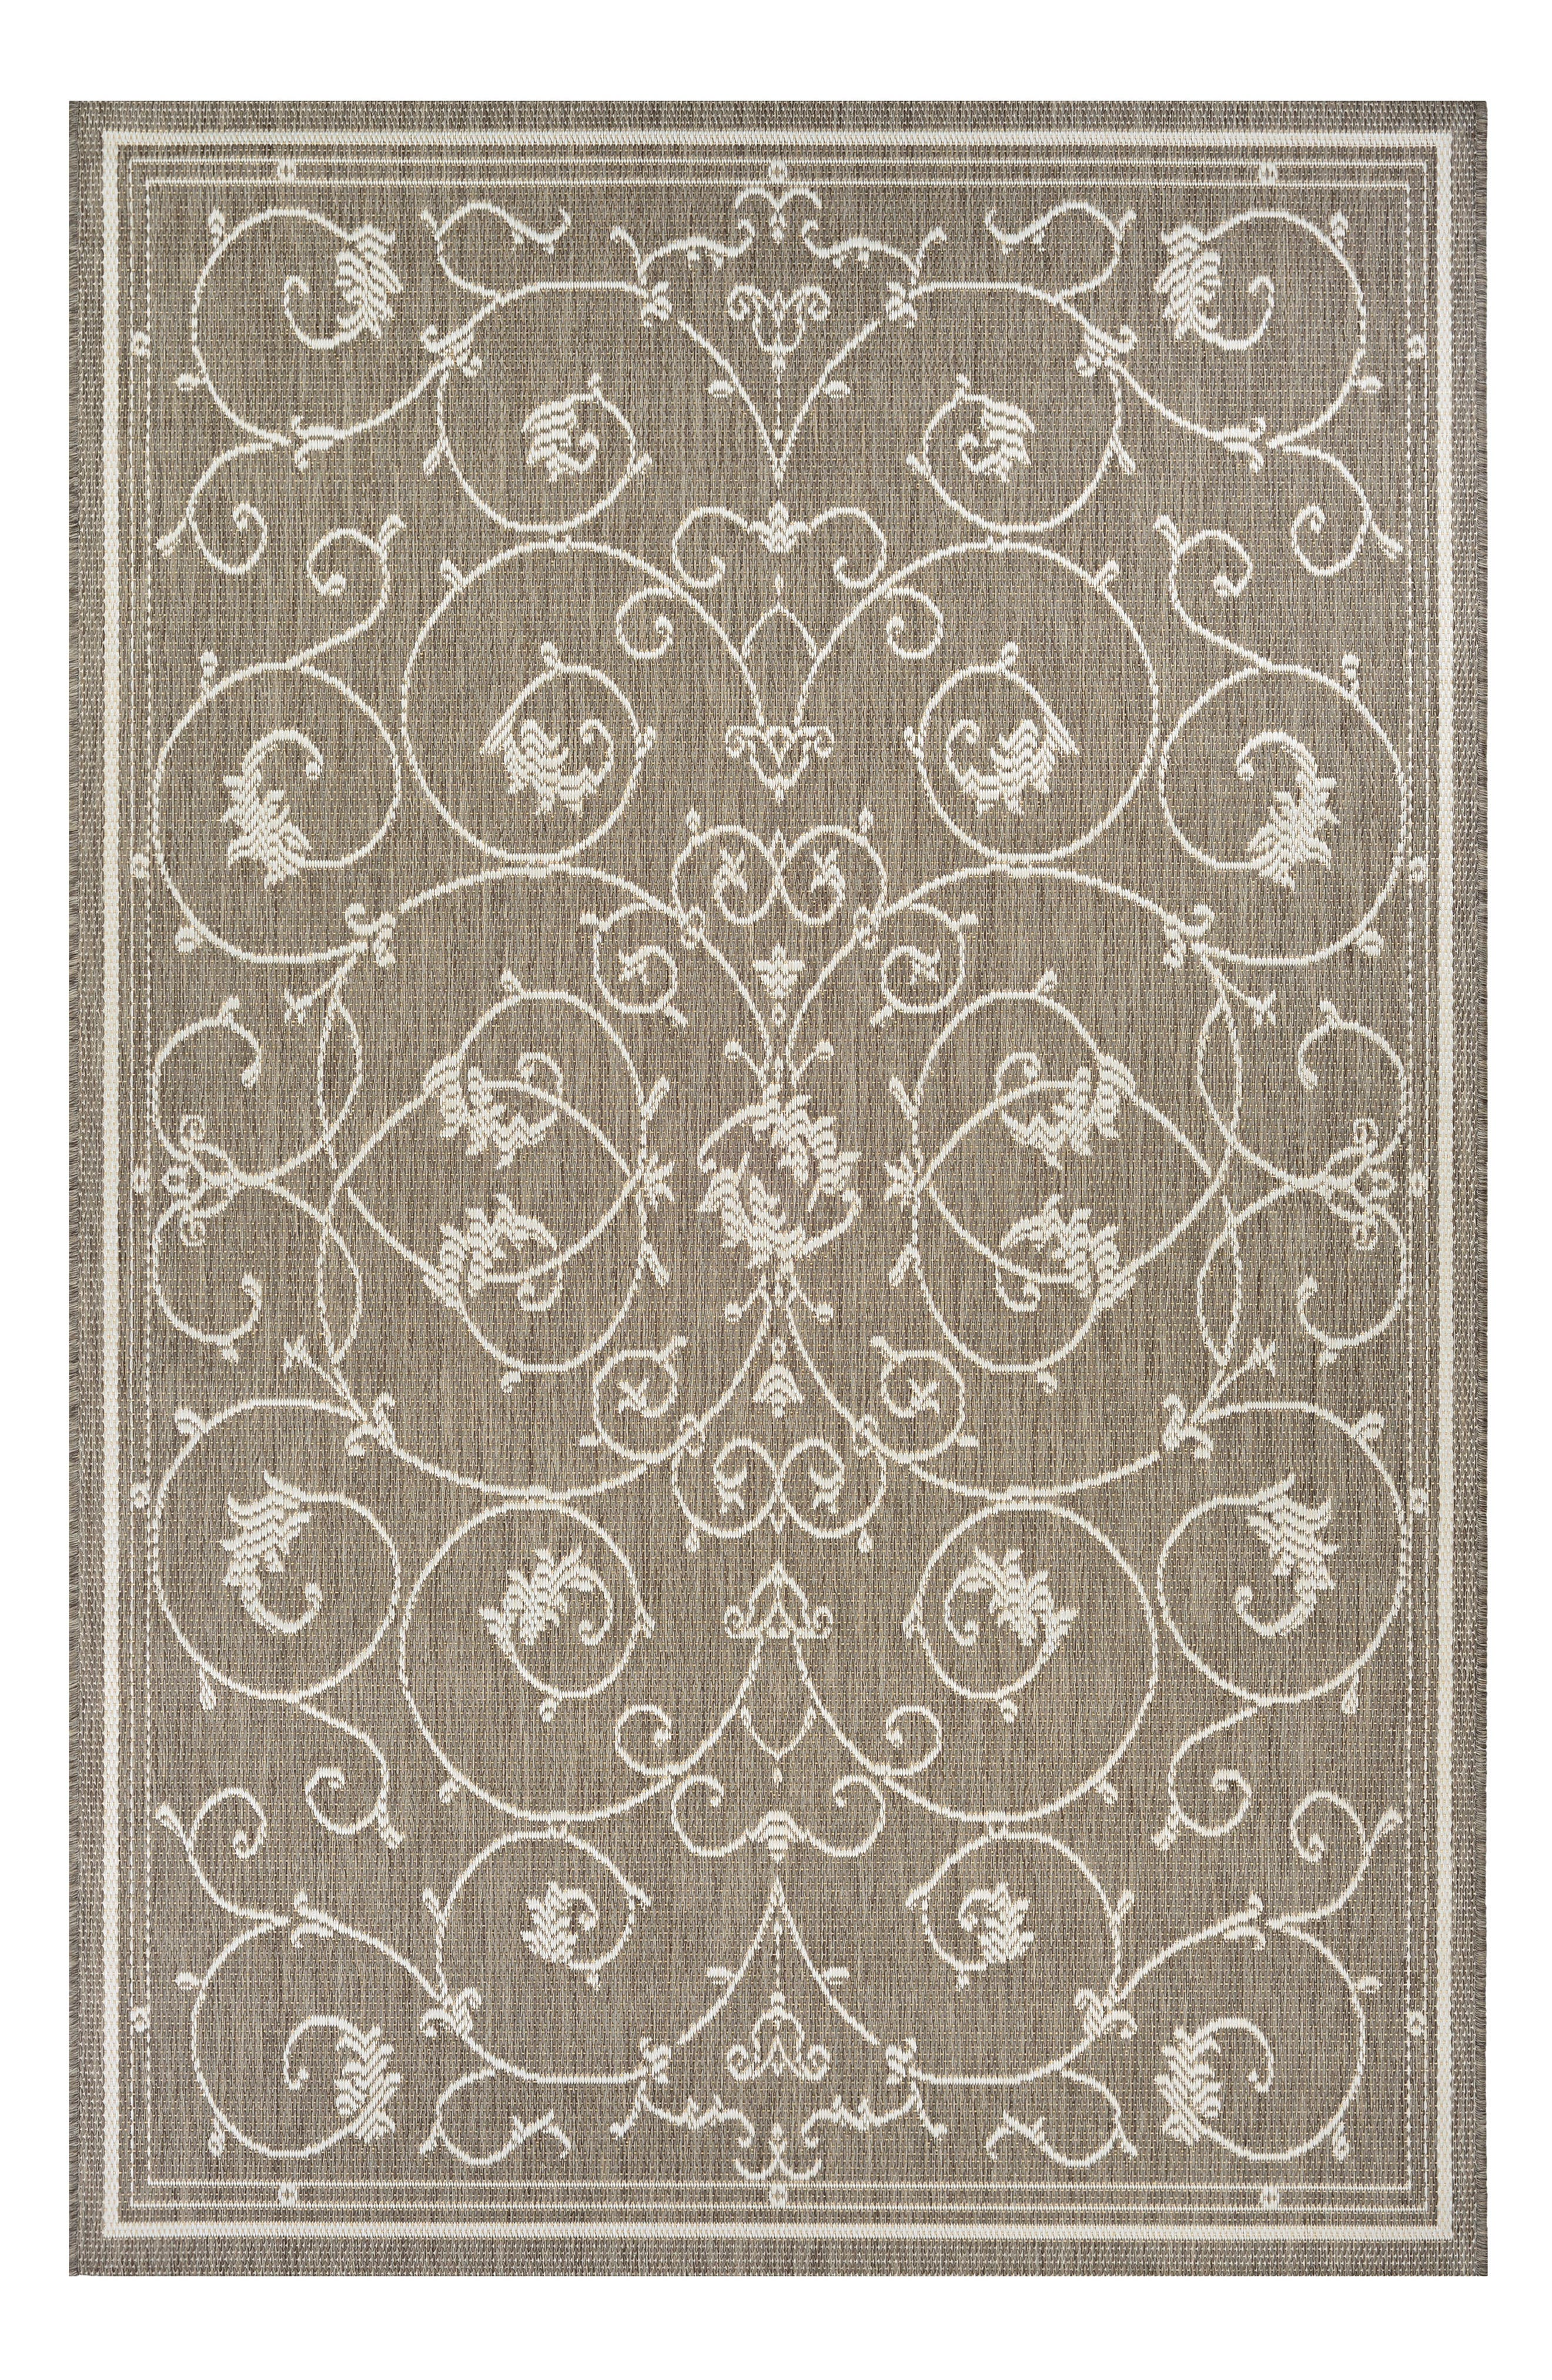 Veranda Indoor/Outdoor Rug,                         Main,                         color, Champagne/ Taupe